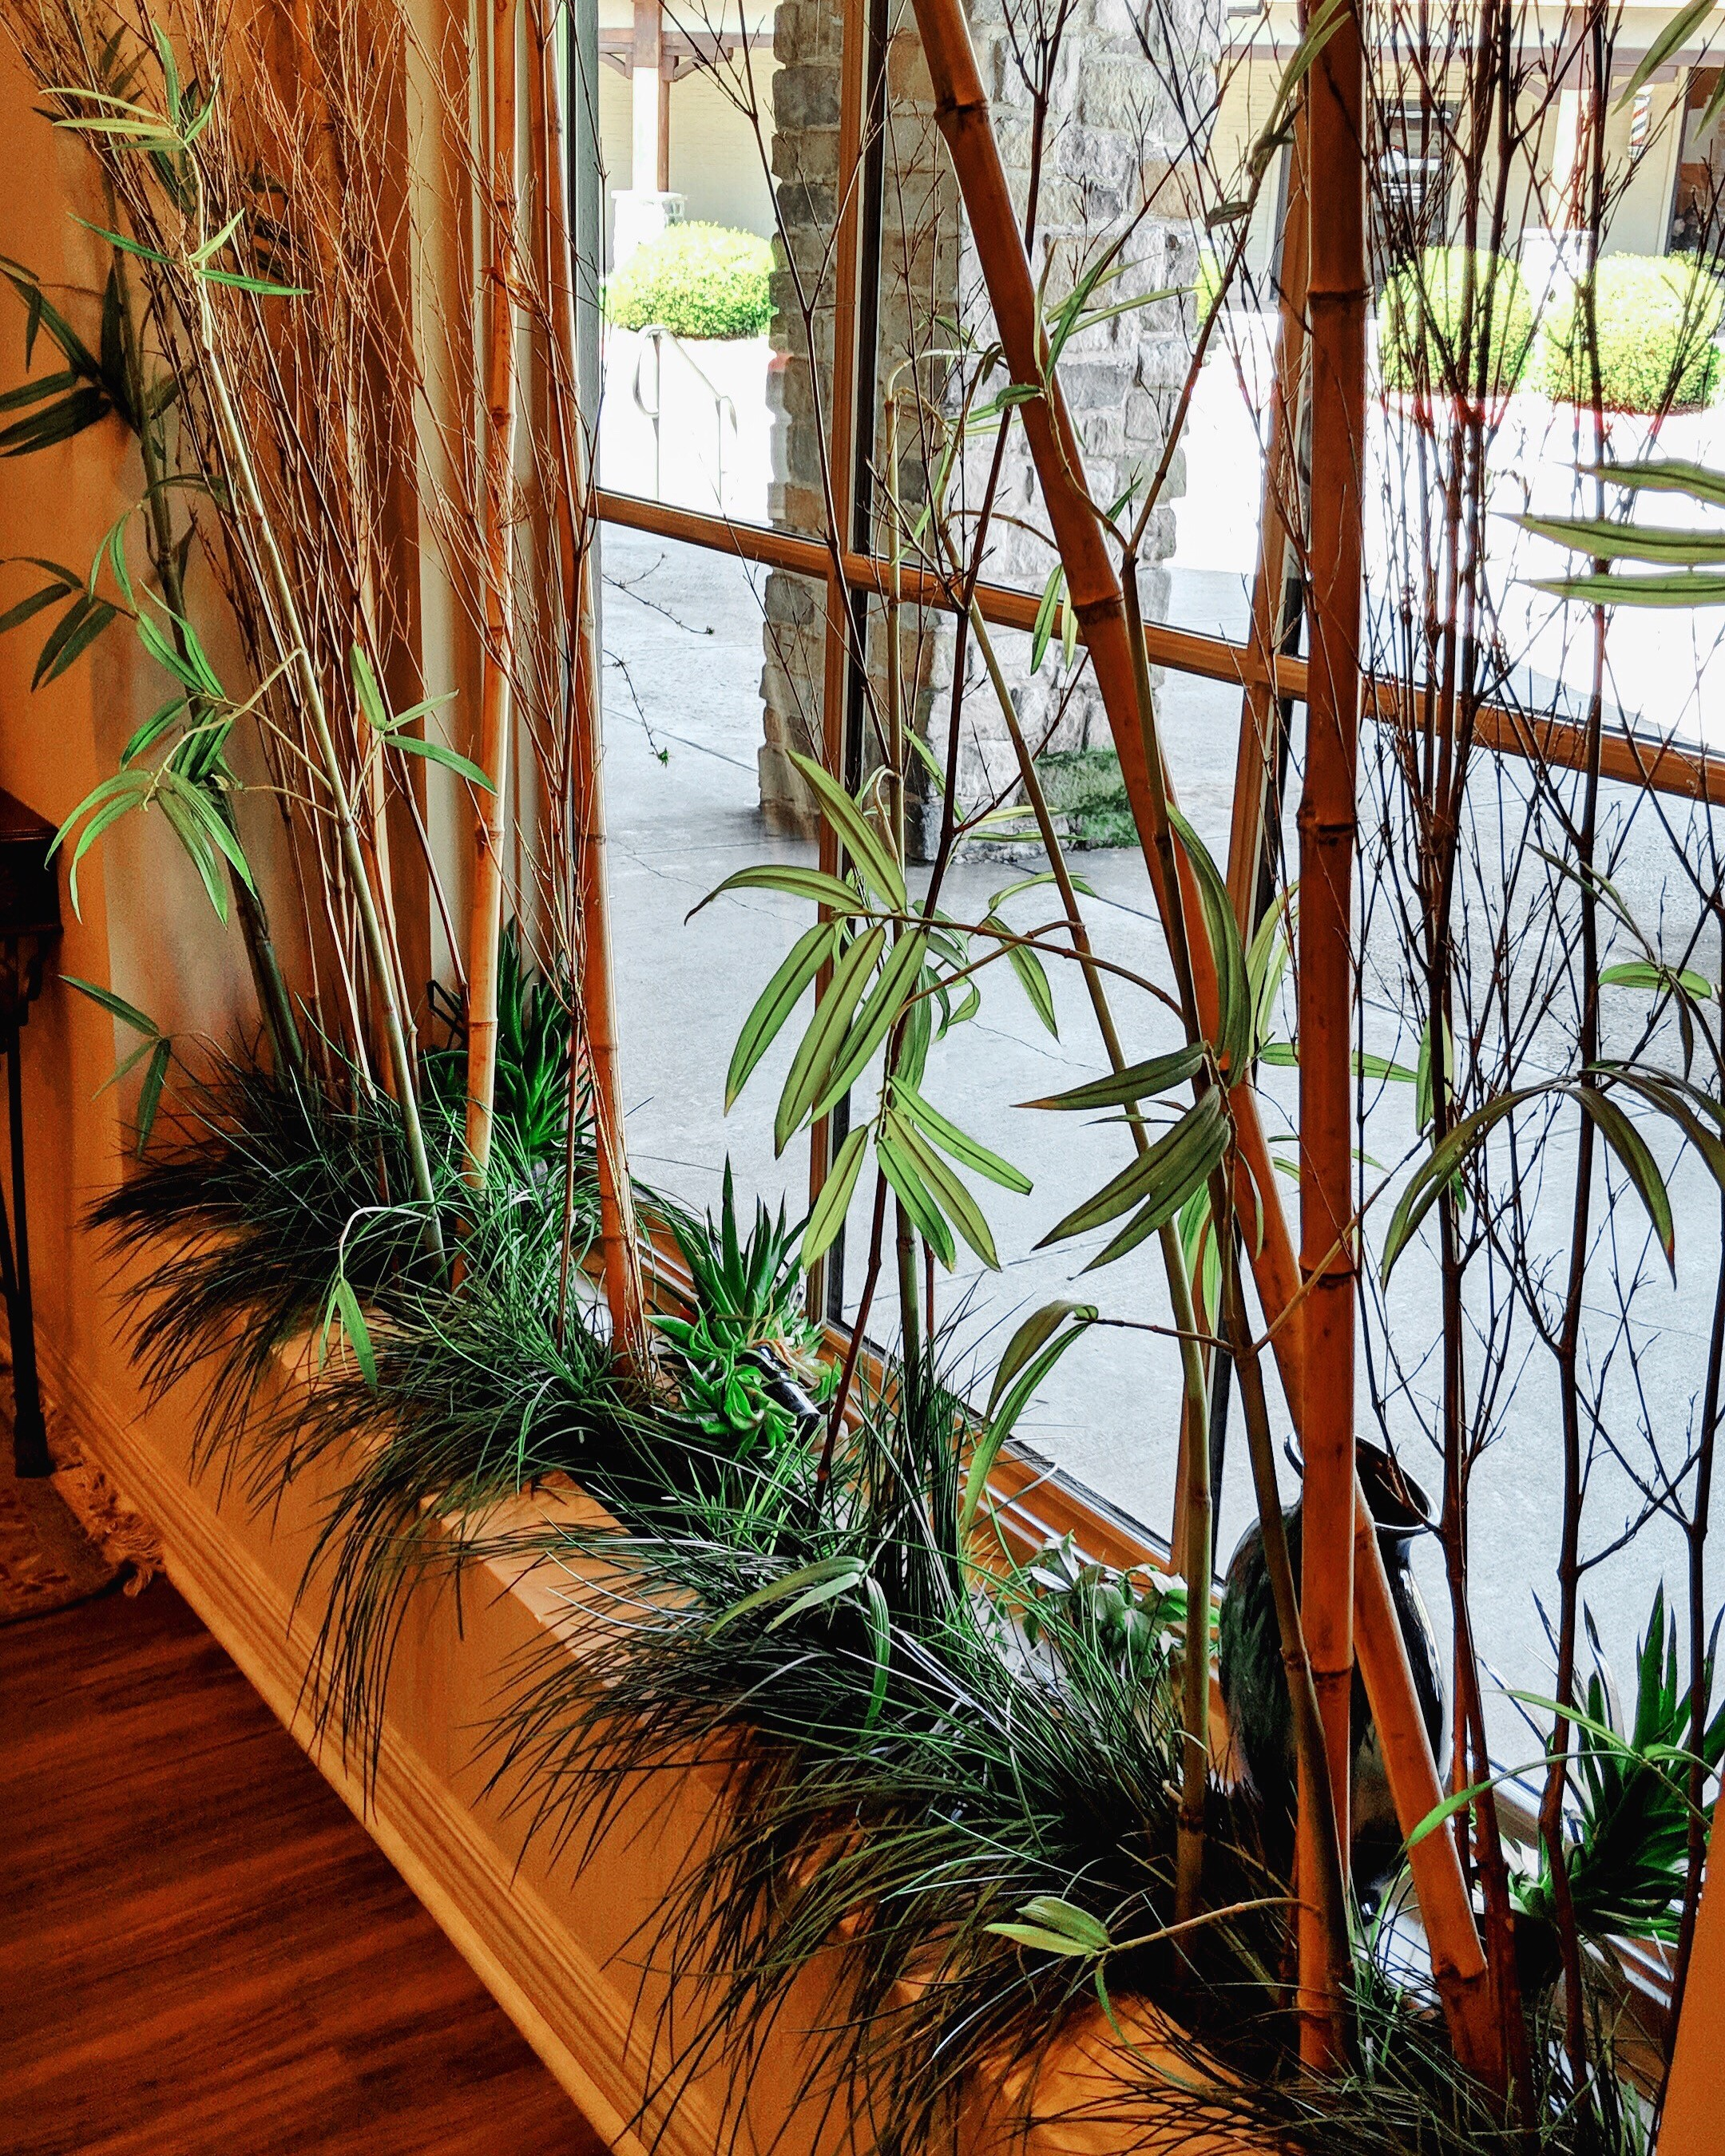 Window Sill with Plants.jpg